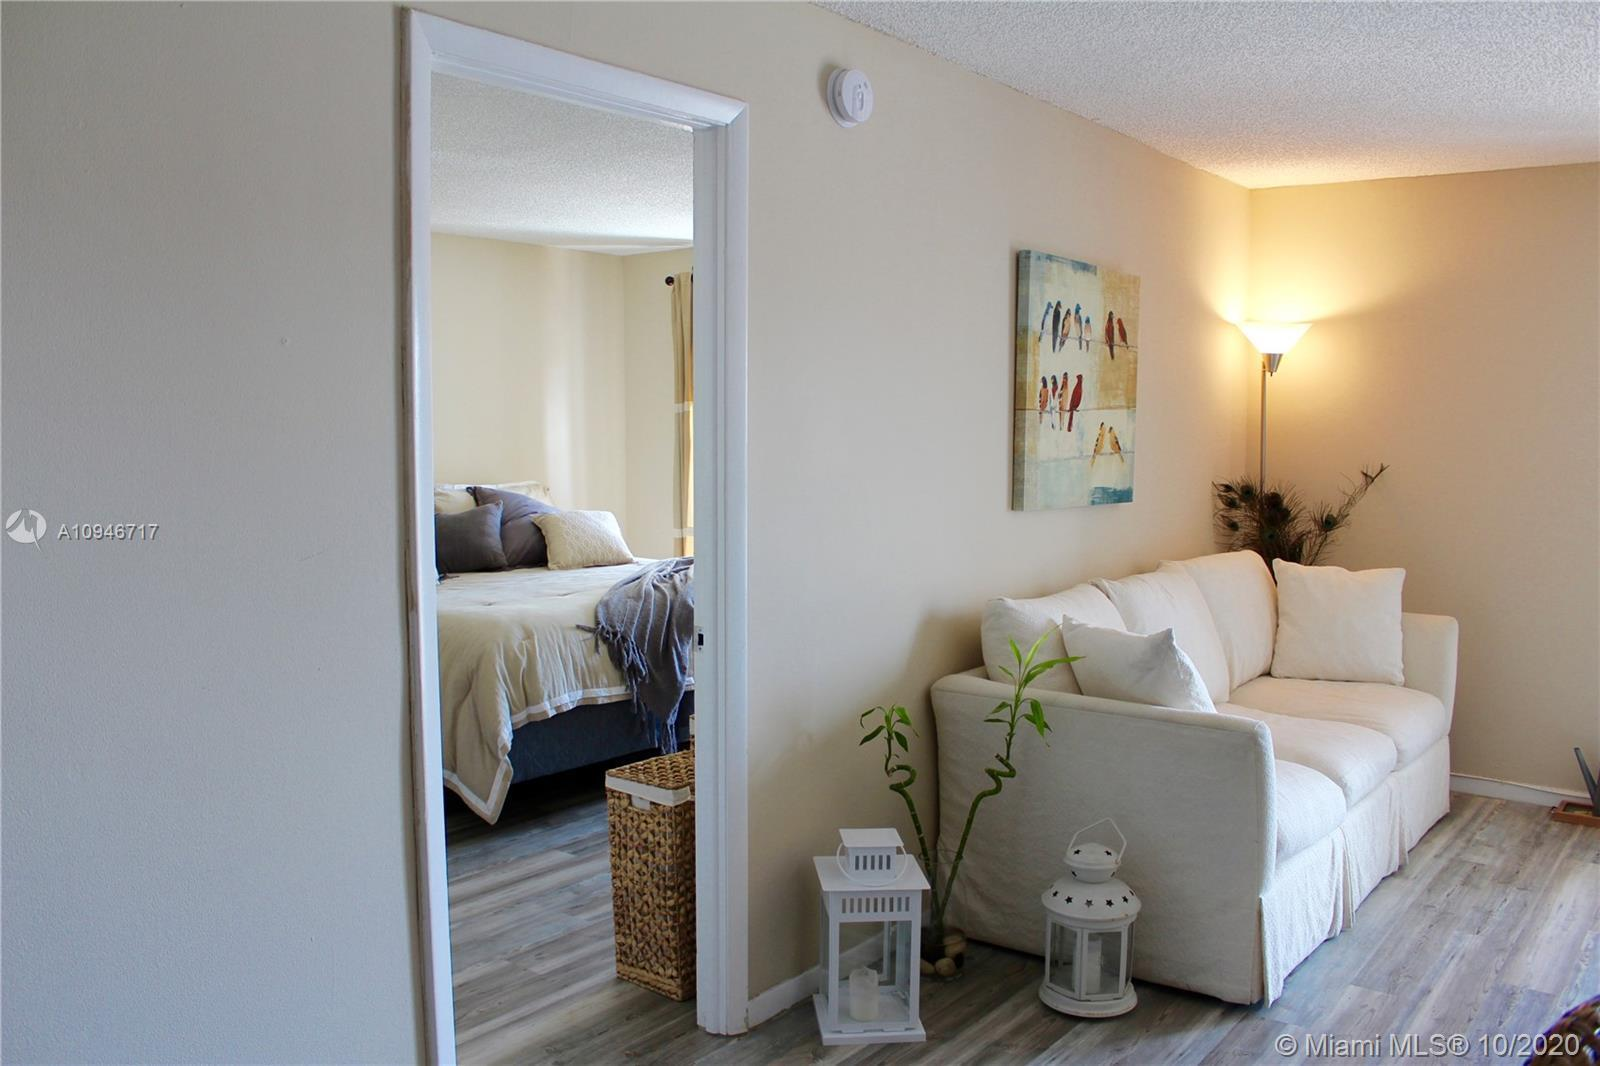 Great location! One block to the beach, close to restaurants and stores, Publix 2 blocks away. 1 bed